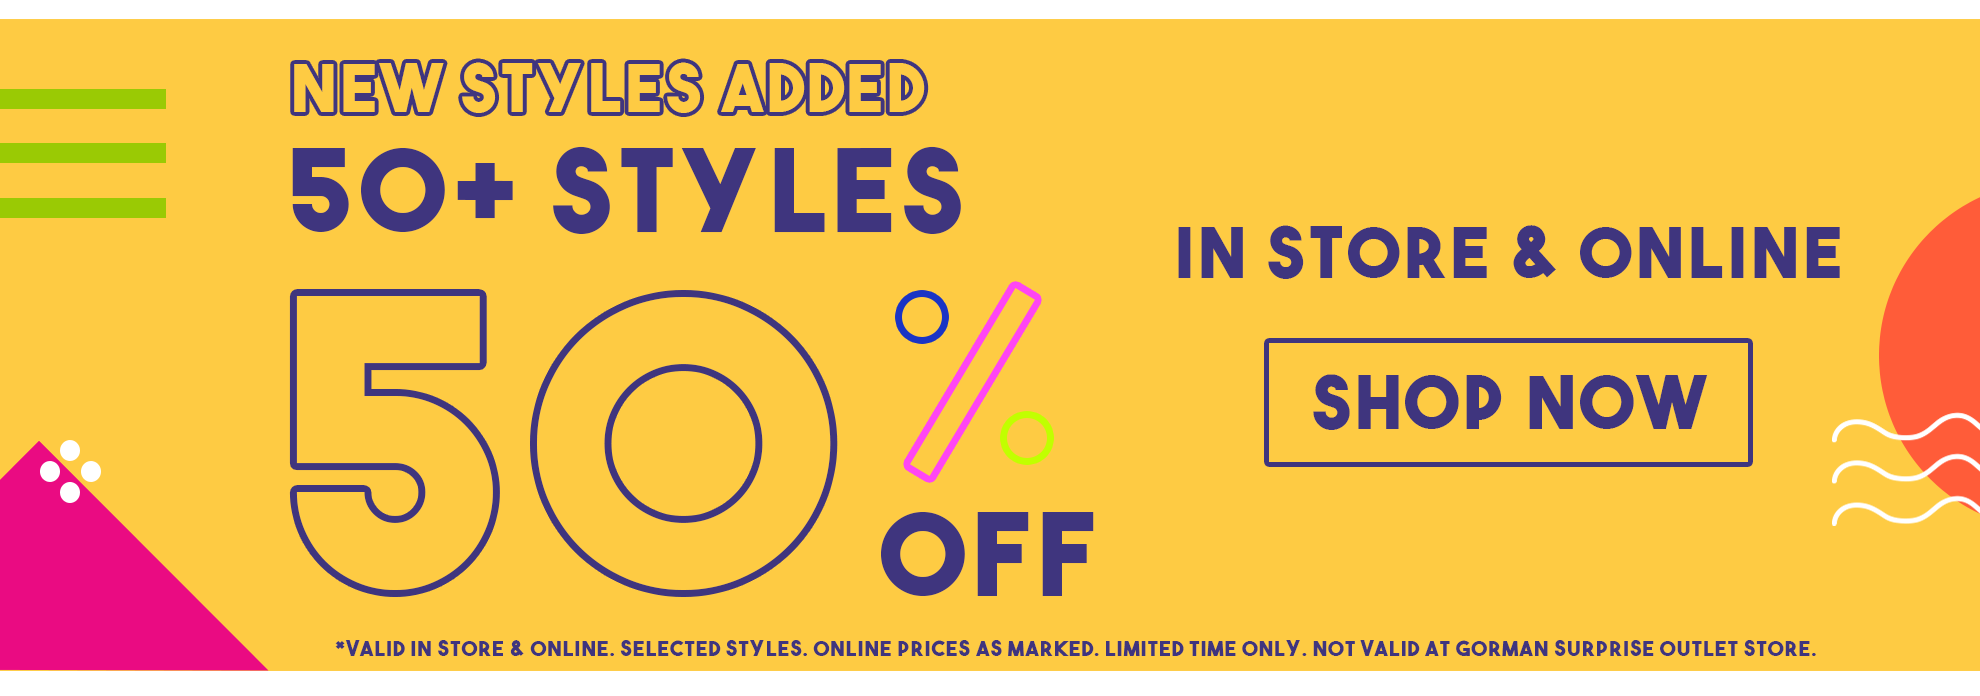 50+ styles at 50% off